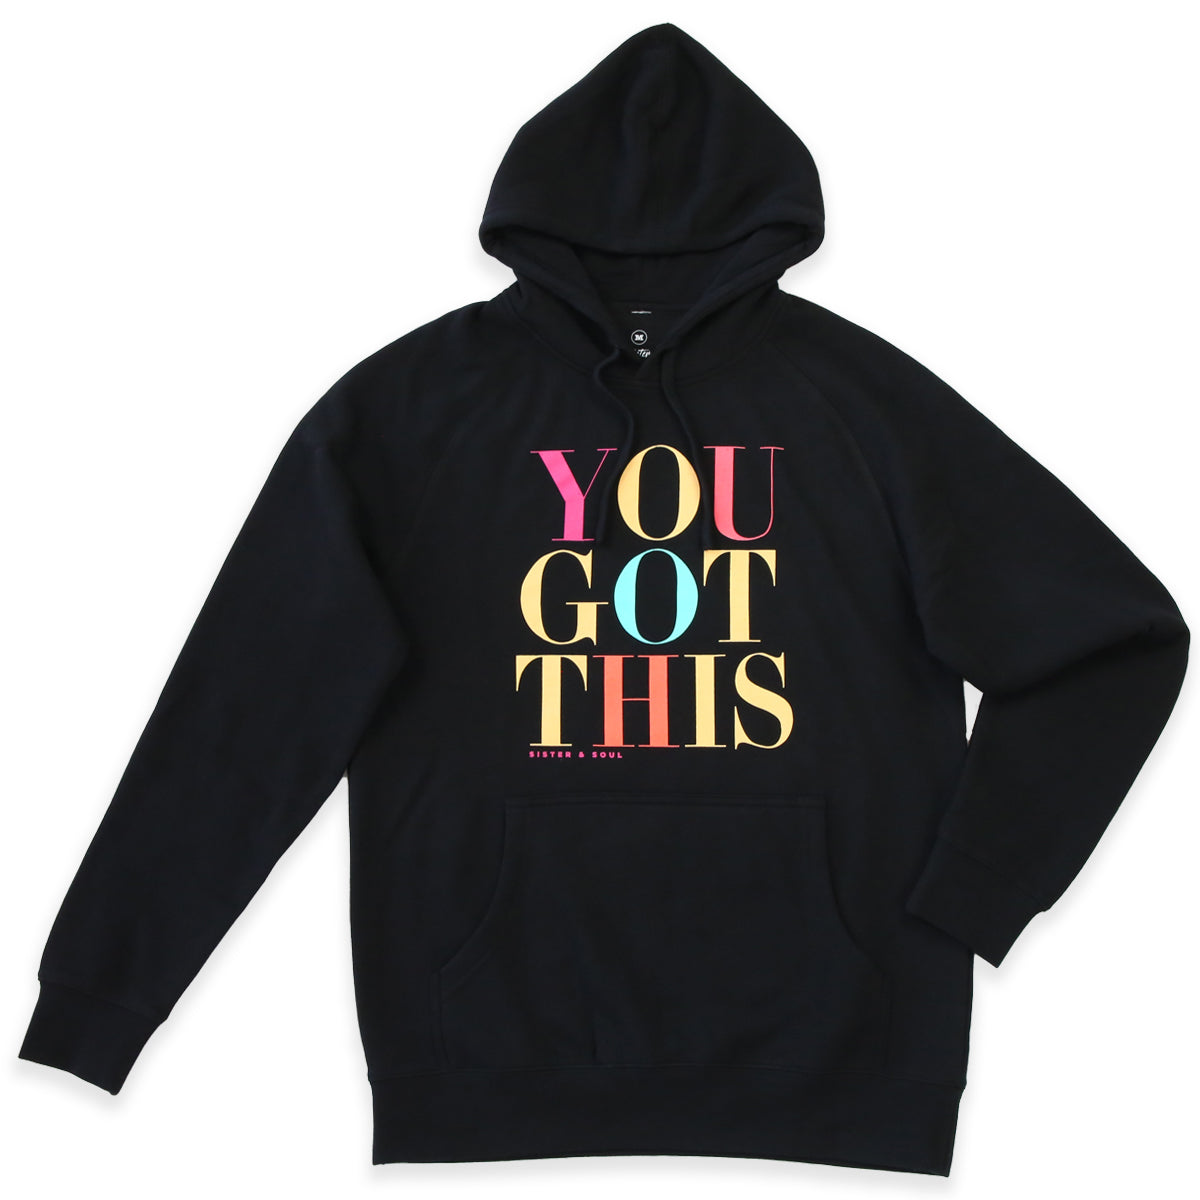 You Got This HOODIE - Black with Colourful Print